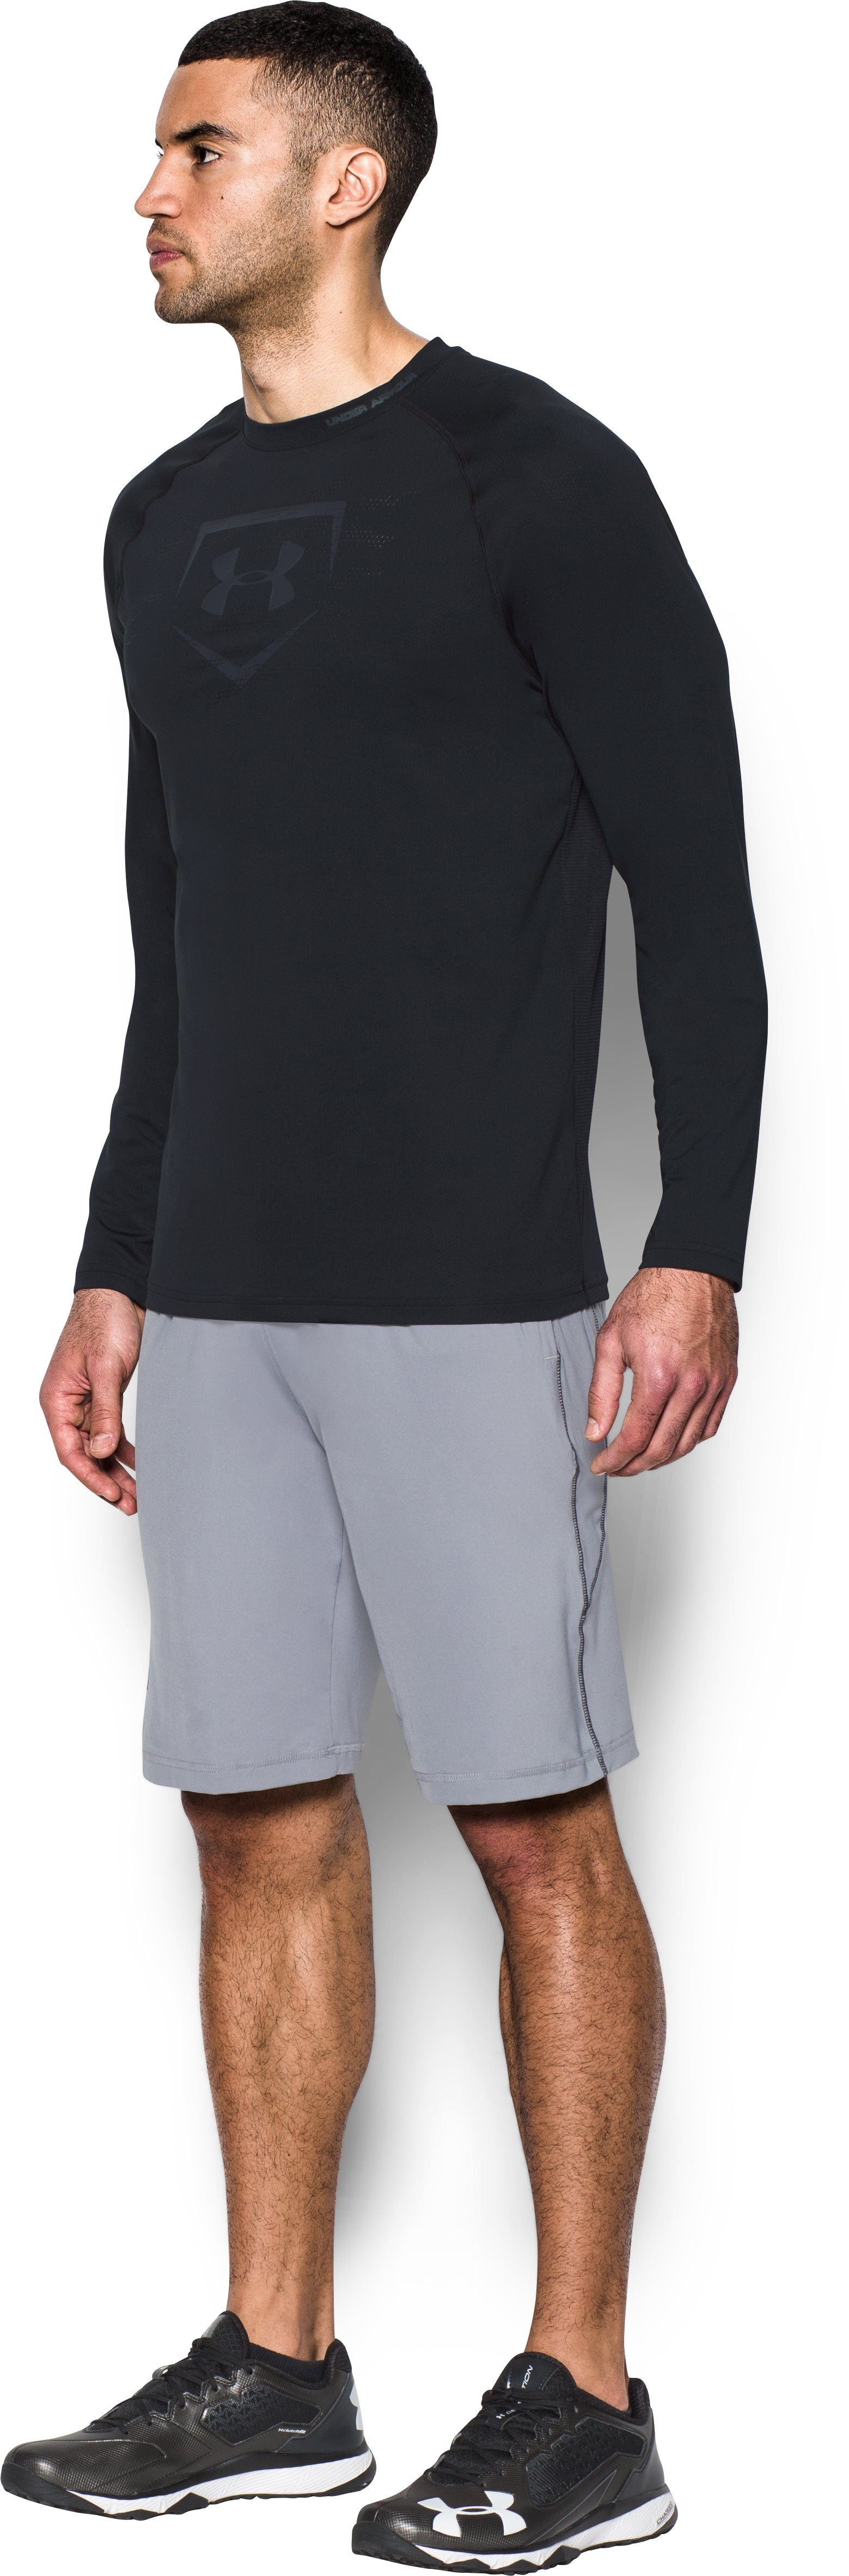 Men's UA Baseball Training Long Sleeve, Black